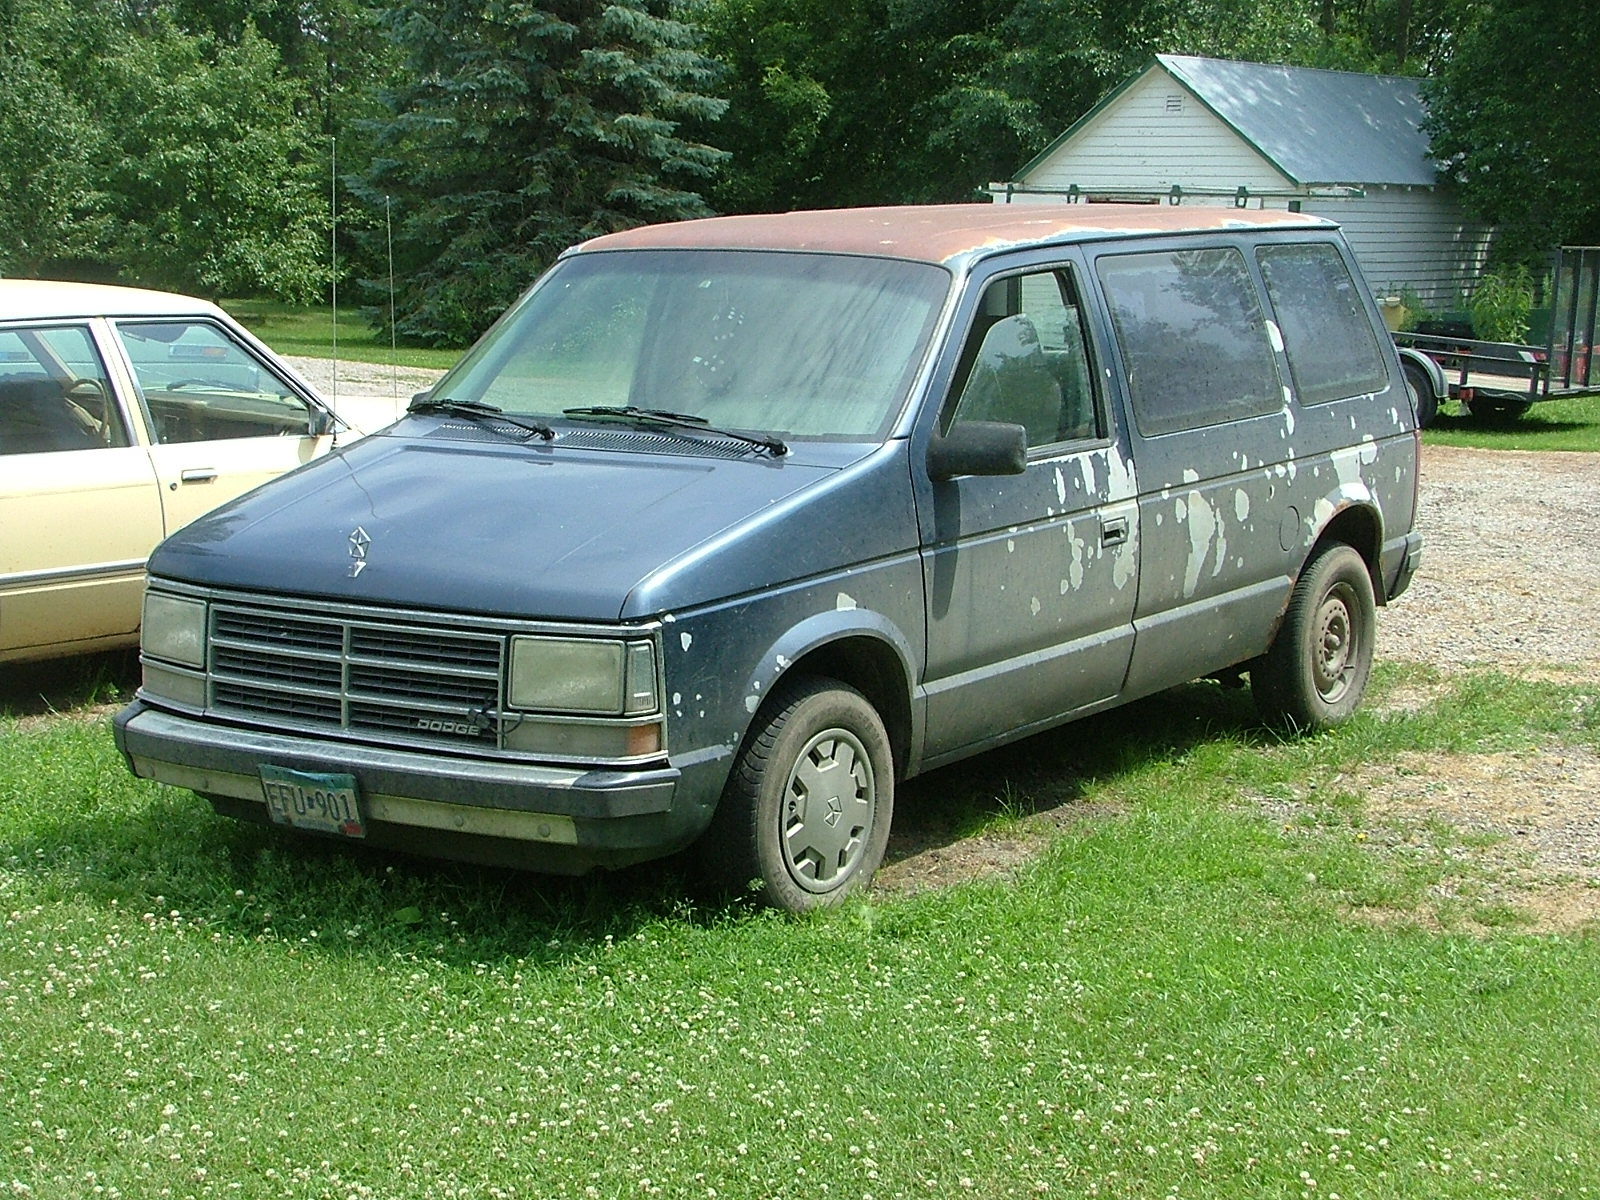 1990 Dodge Caravan - Overview - CarGurus